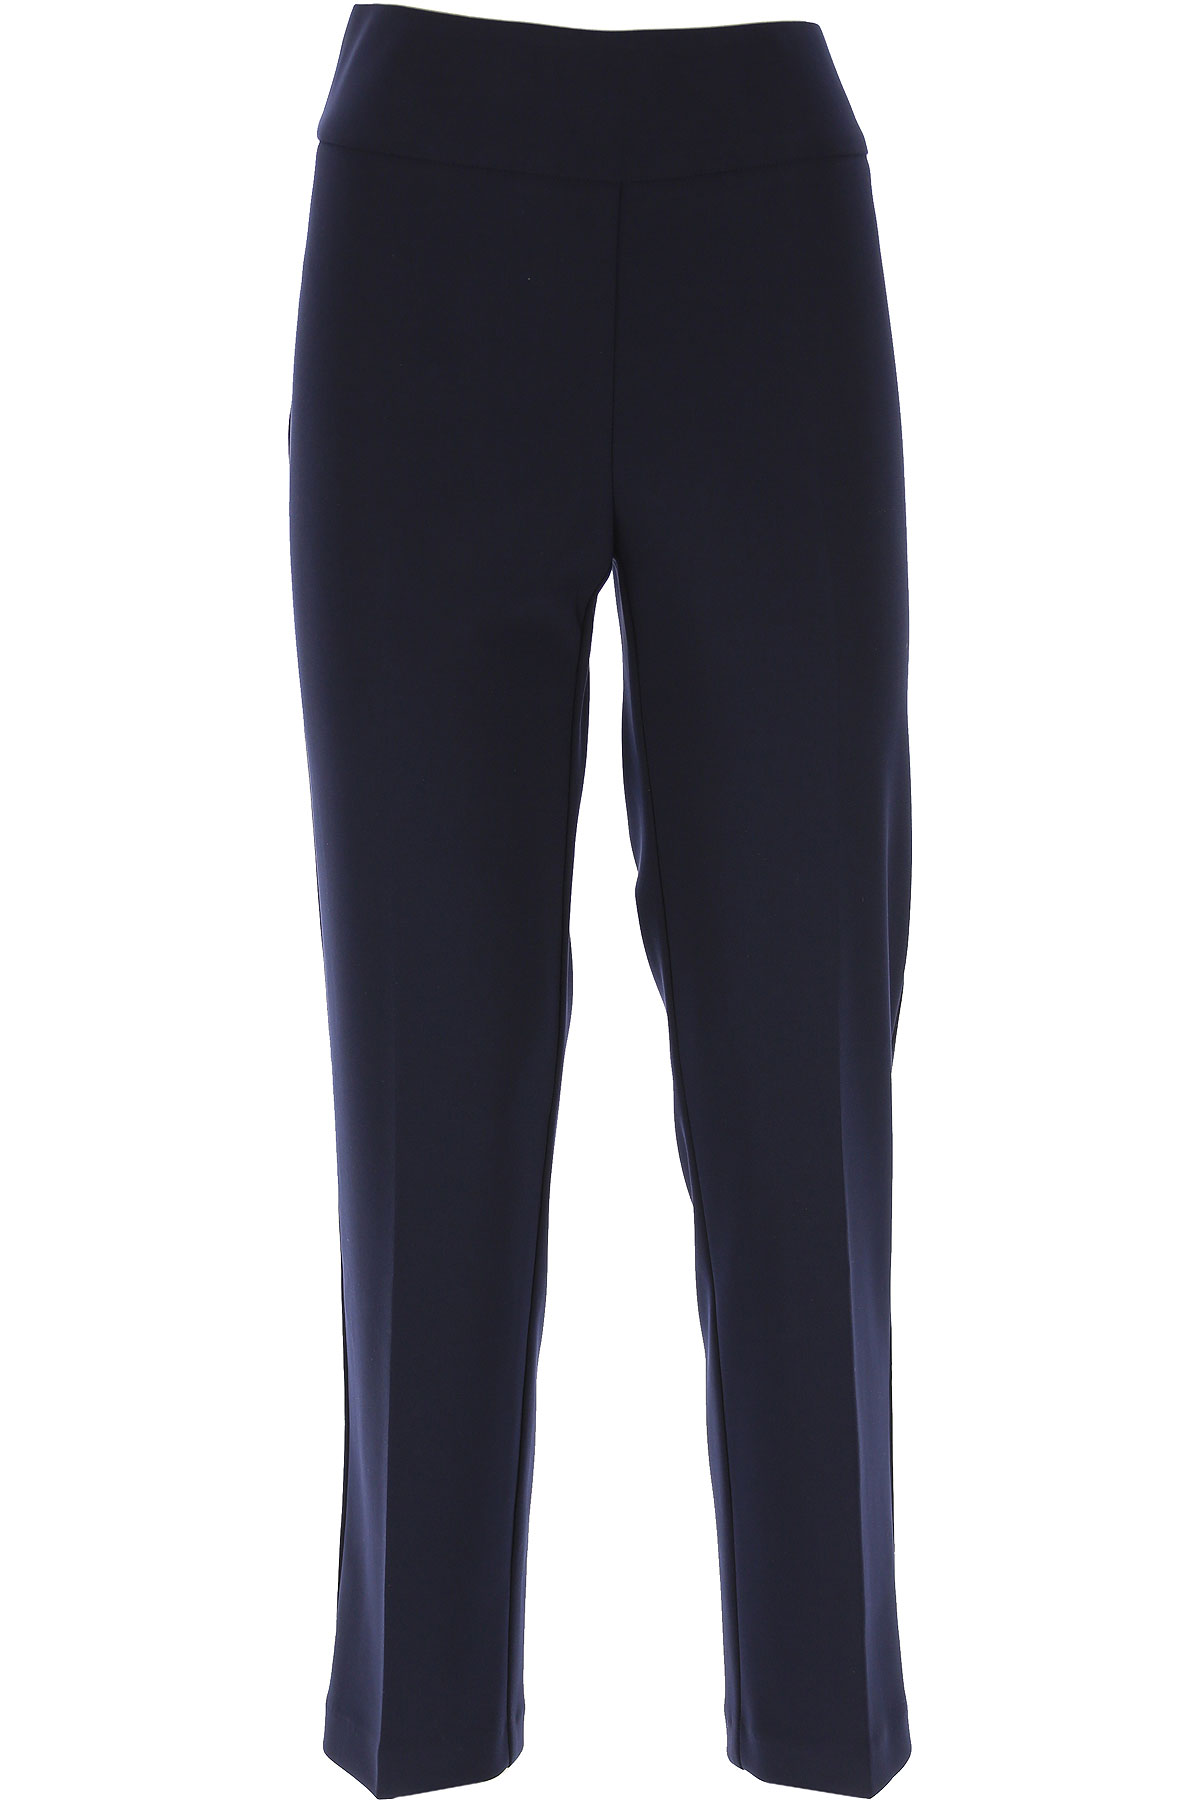 Joseph Ribkoff Pants for Women On Sale, Blue, polyester, 2019, 30 32